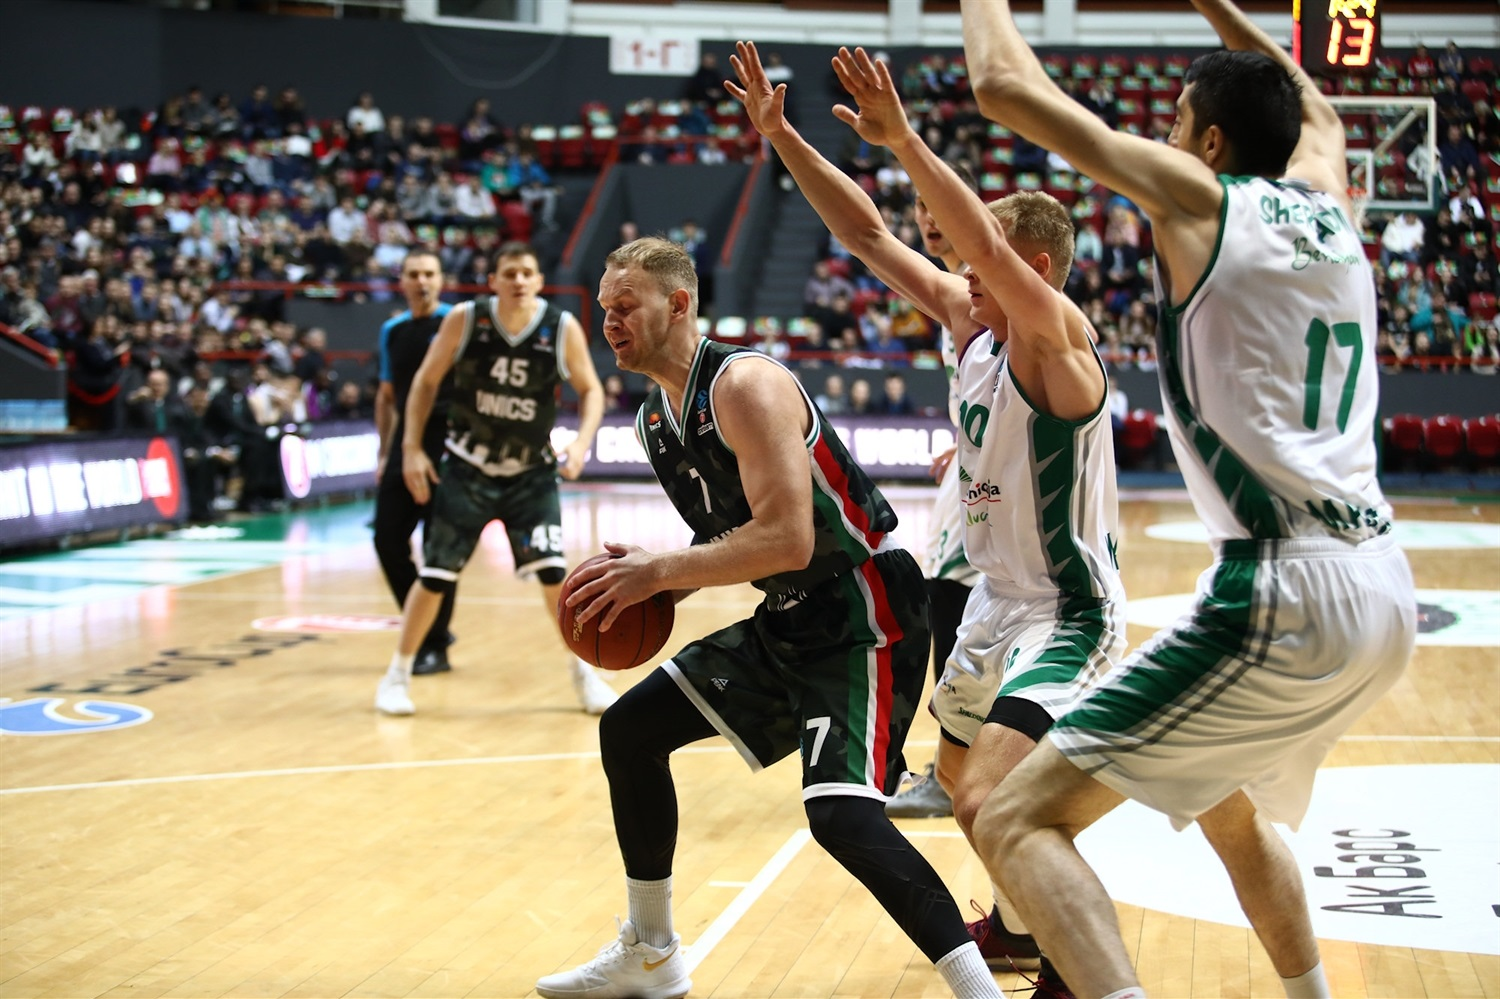 Anton Ponkrashov - UNICS Kazan (photo UNICS) - EC18